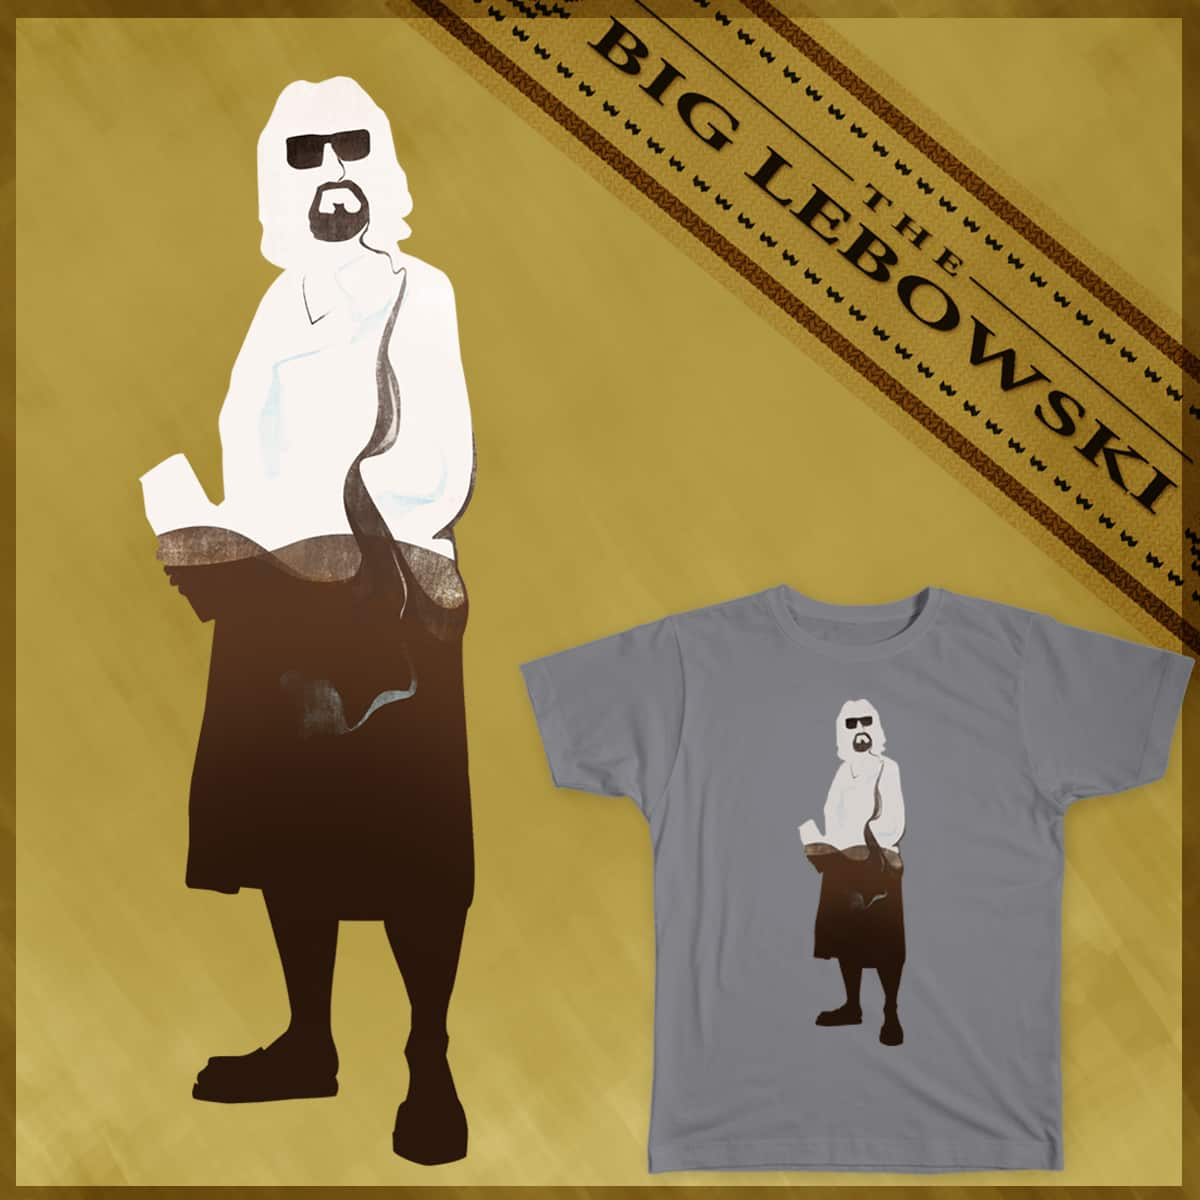 White Russian dude by mirco chen on Threadless